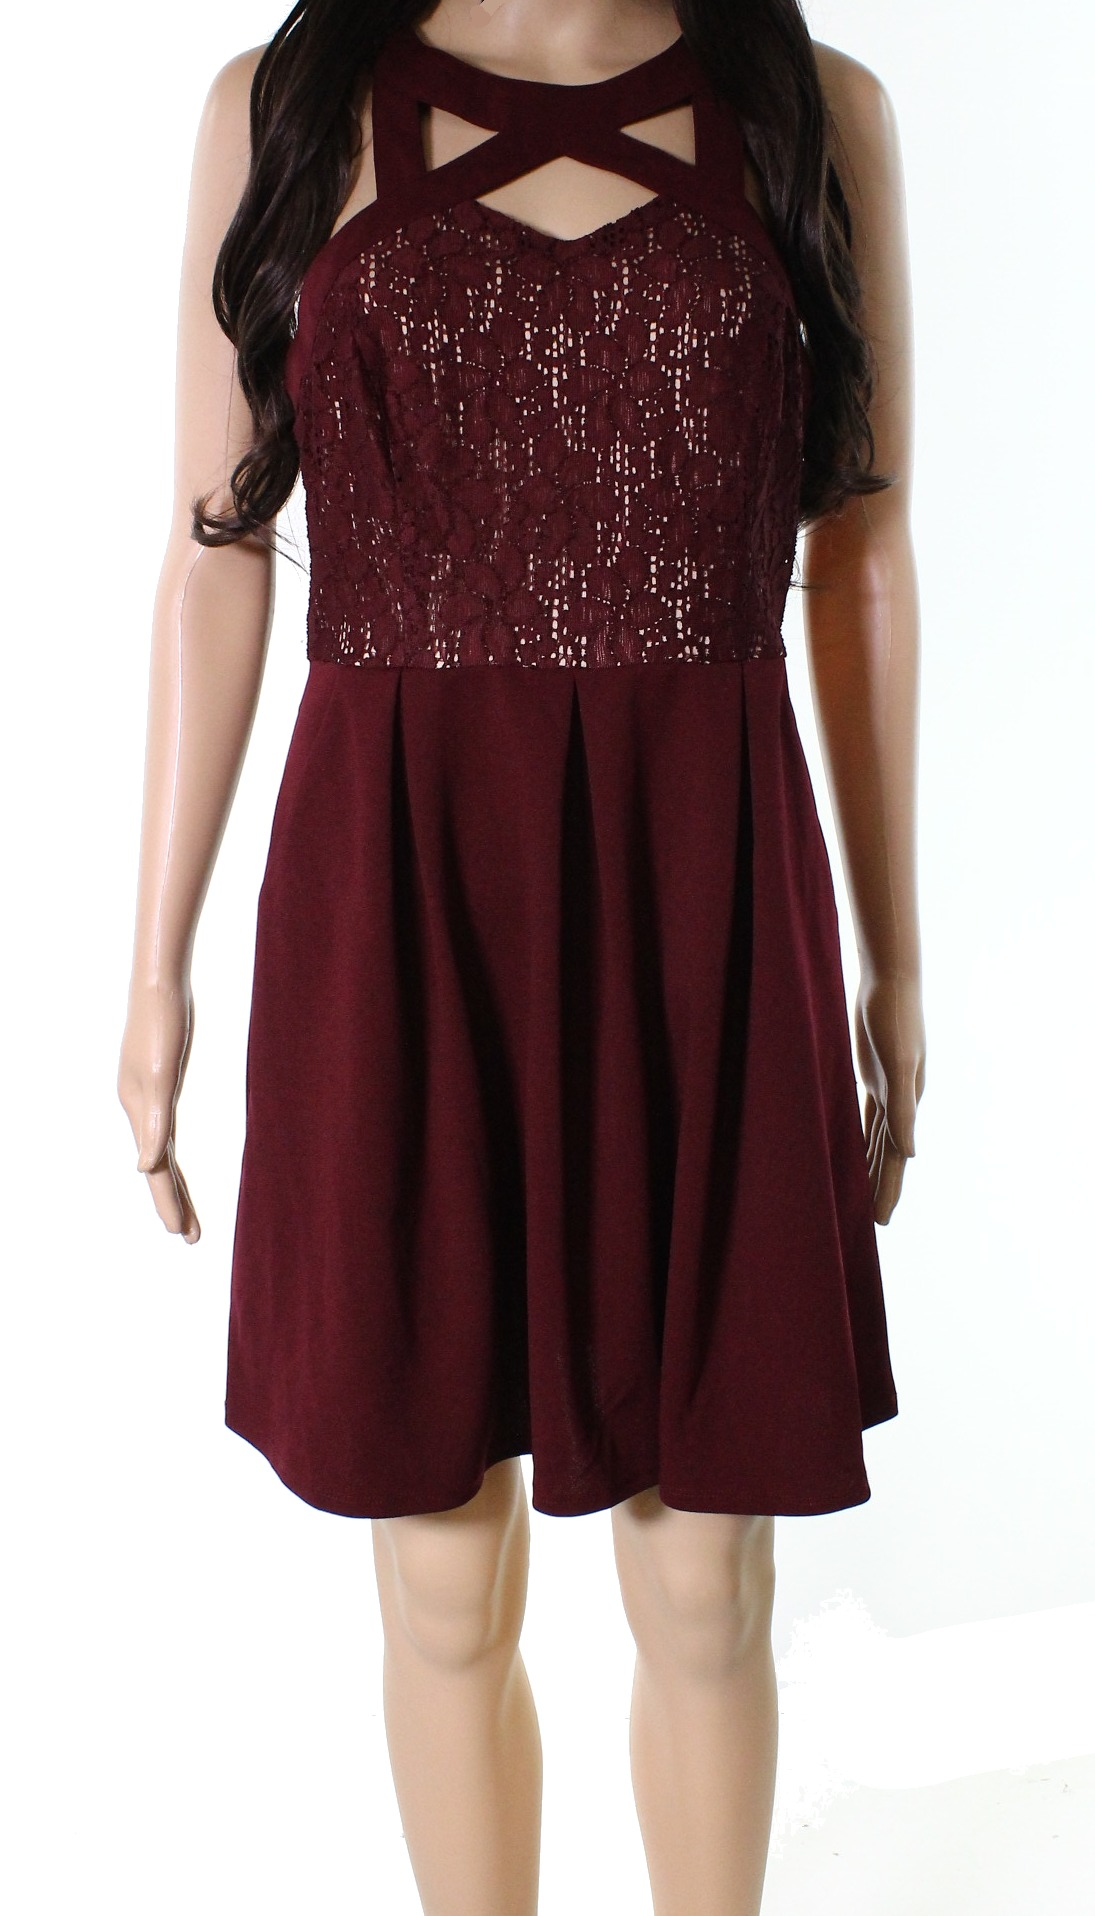 New-Speechless-NEW-Red-Junior-Size-Large-L-A-Line-Pleated-Lace-Dress-52-293